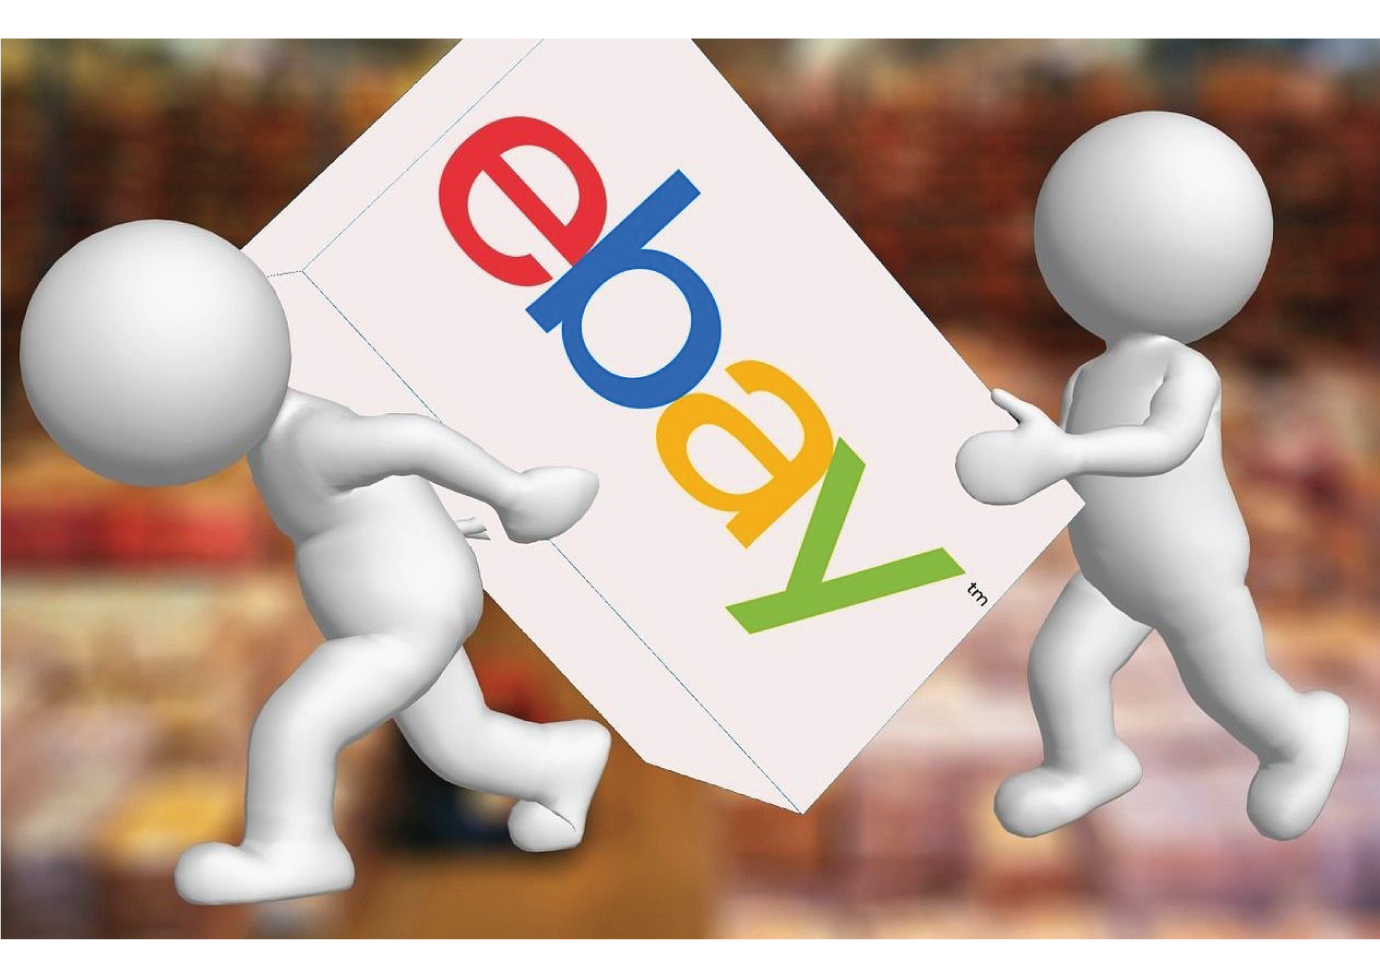 10 Things to Consider before selling on eBay